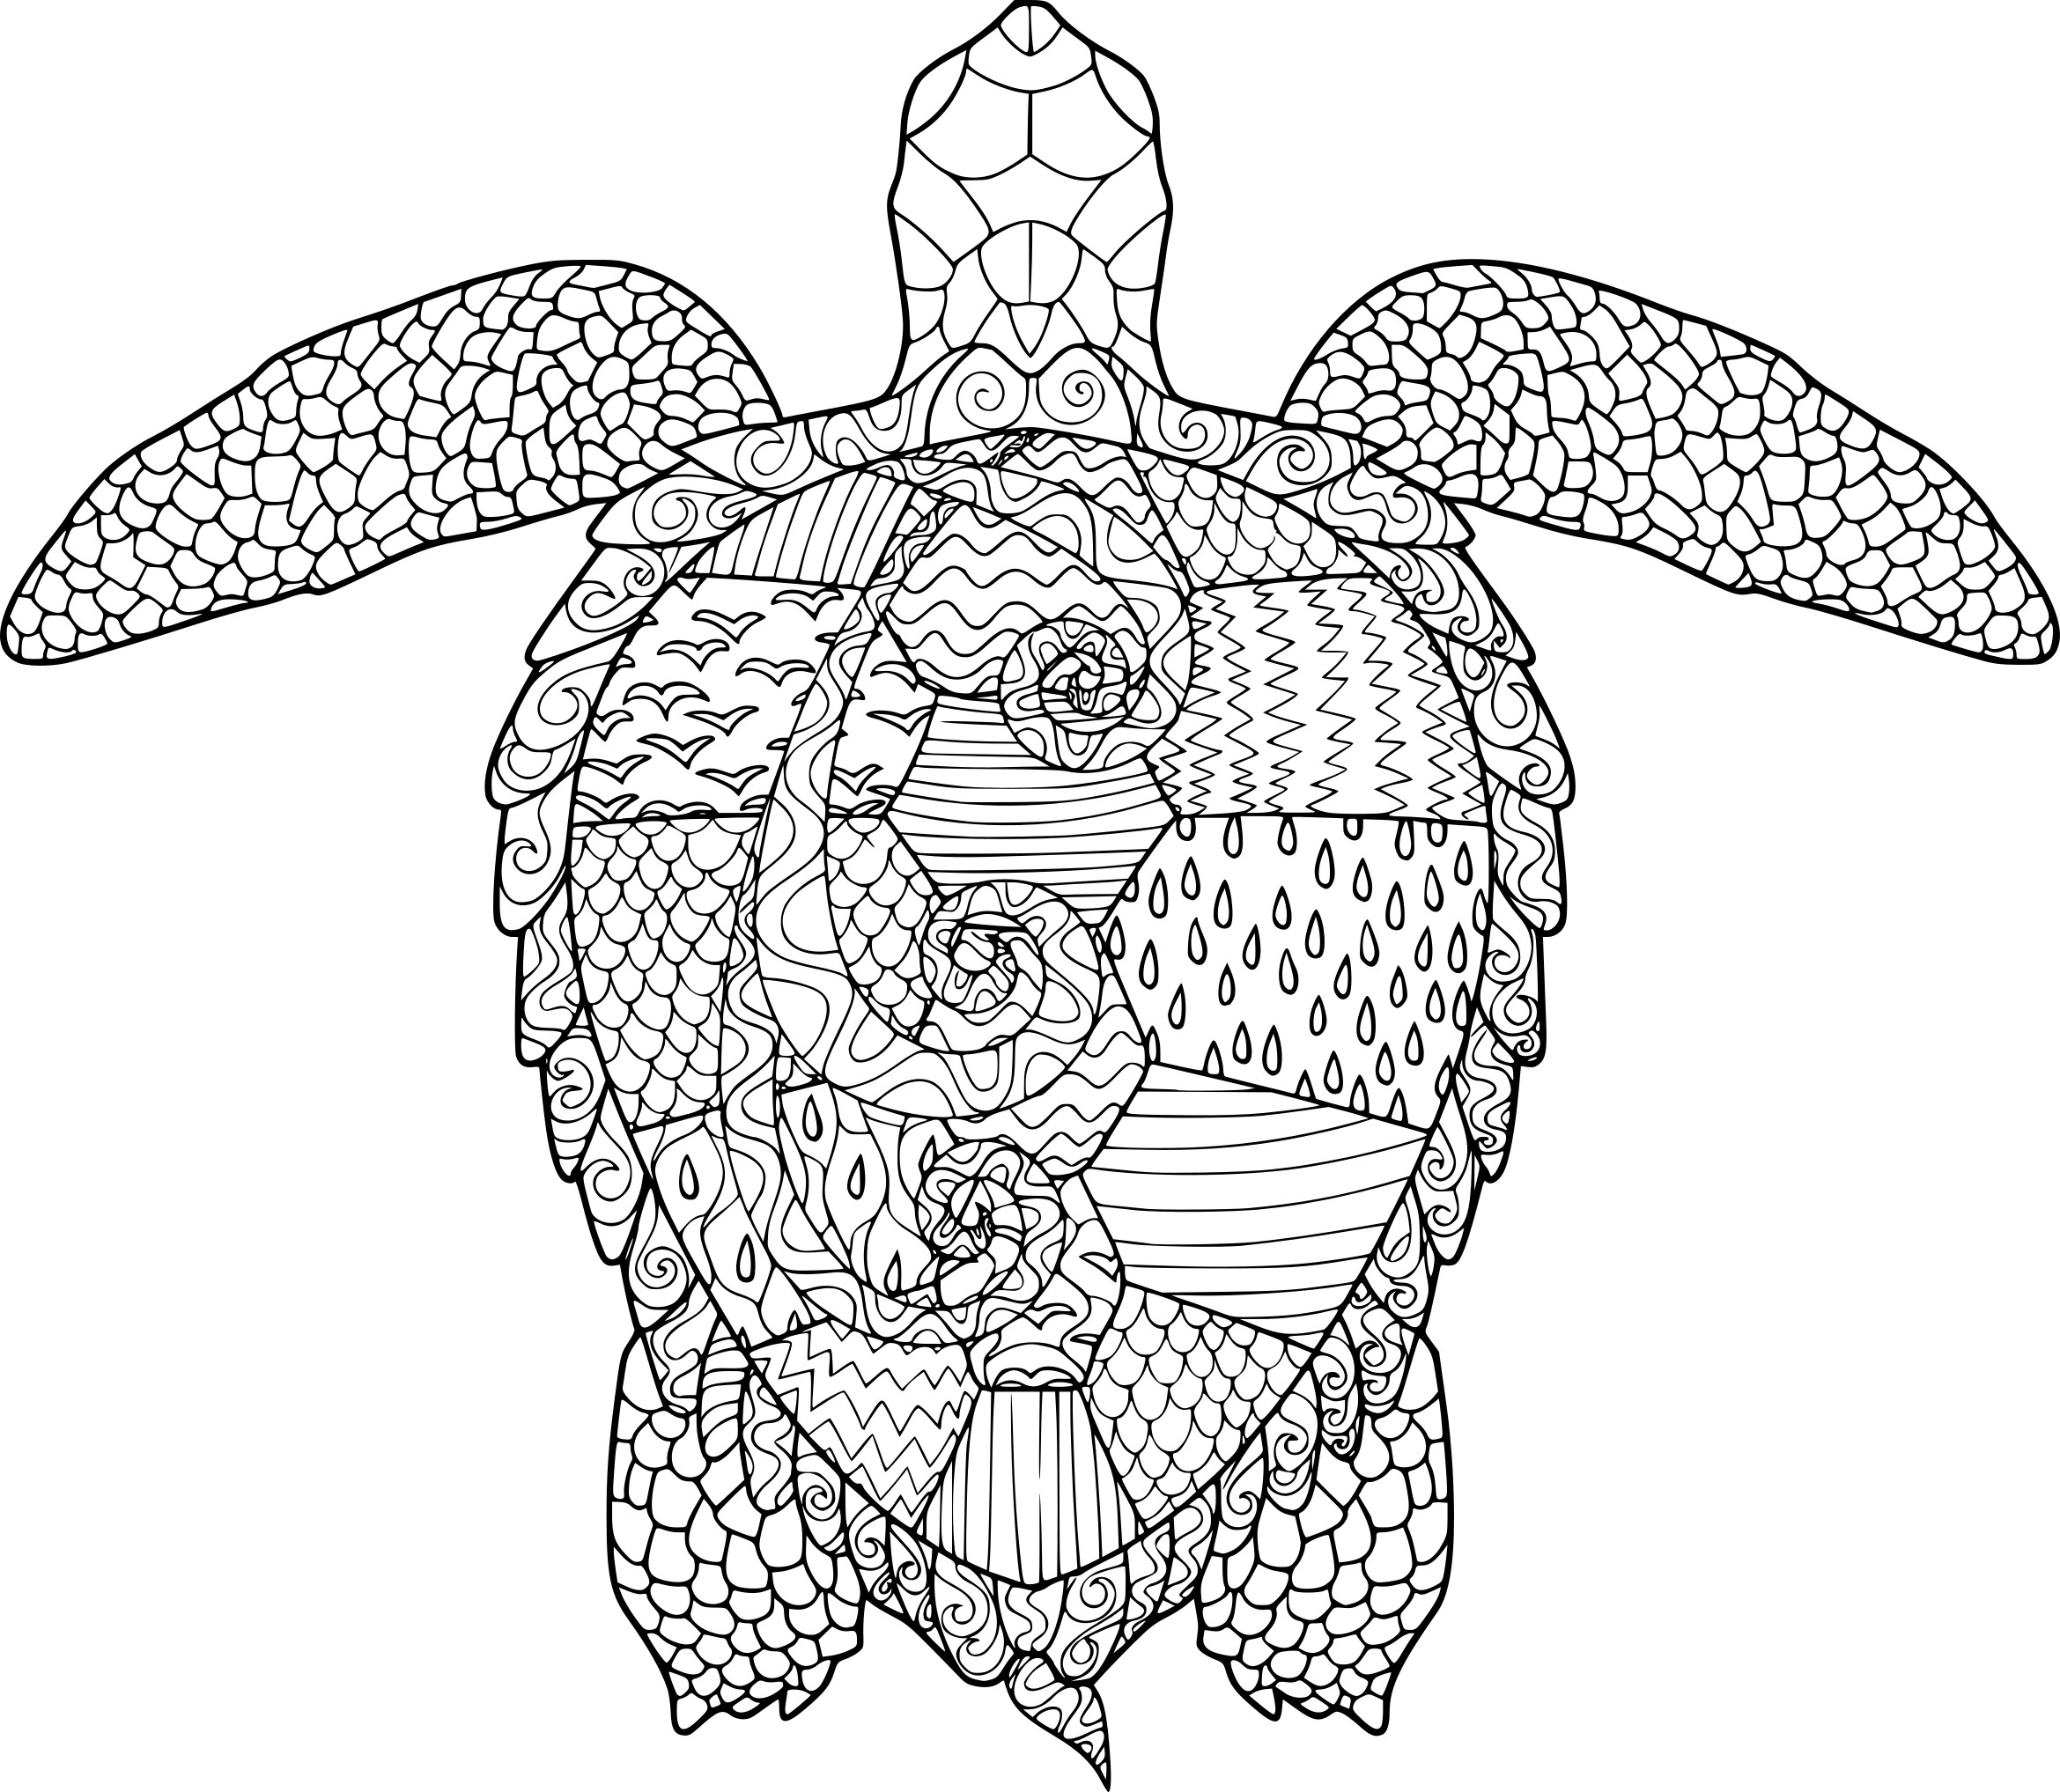 Coloriage A Imprimer Tortue.Coloriage Anti Stress Tortue